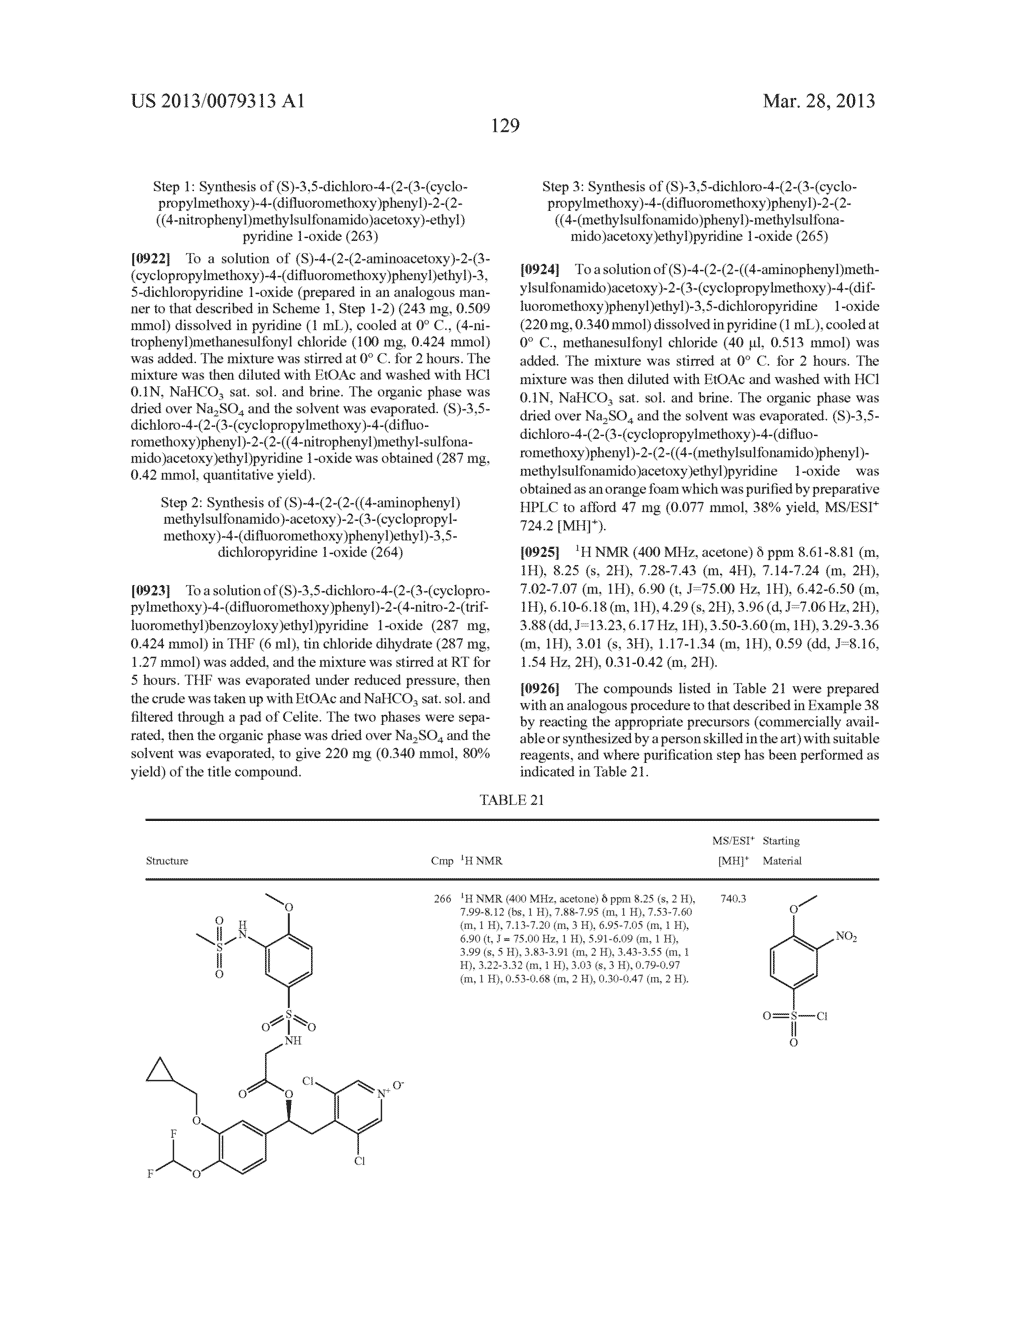 DERIVATIVES OF 1-PHENYL-2-PYRIDINYL ALKYL ALCOHOLS AS PHOSPHODIESTERASE     INHIBITORS - diagram, schematic, and image 130